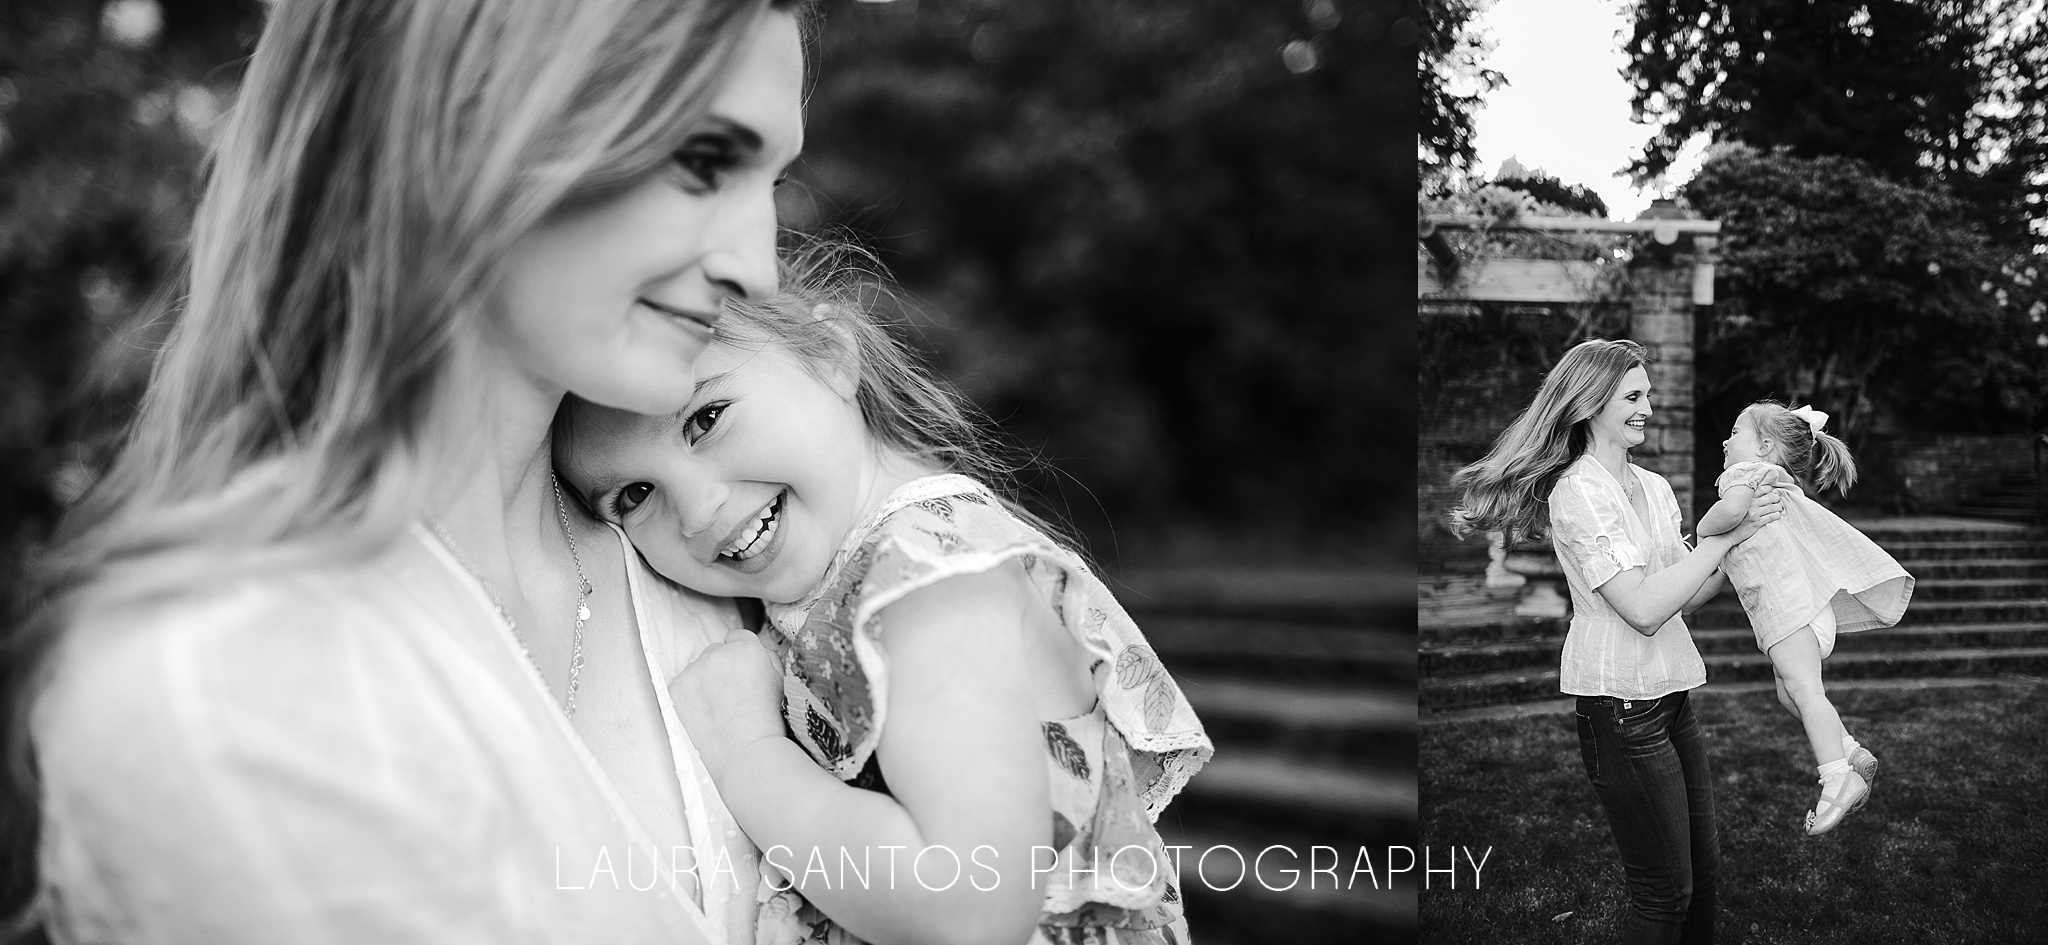 Laura Santos Photography Portland Oregon Family Photographer_0909.jpg